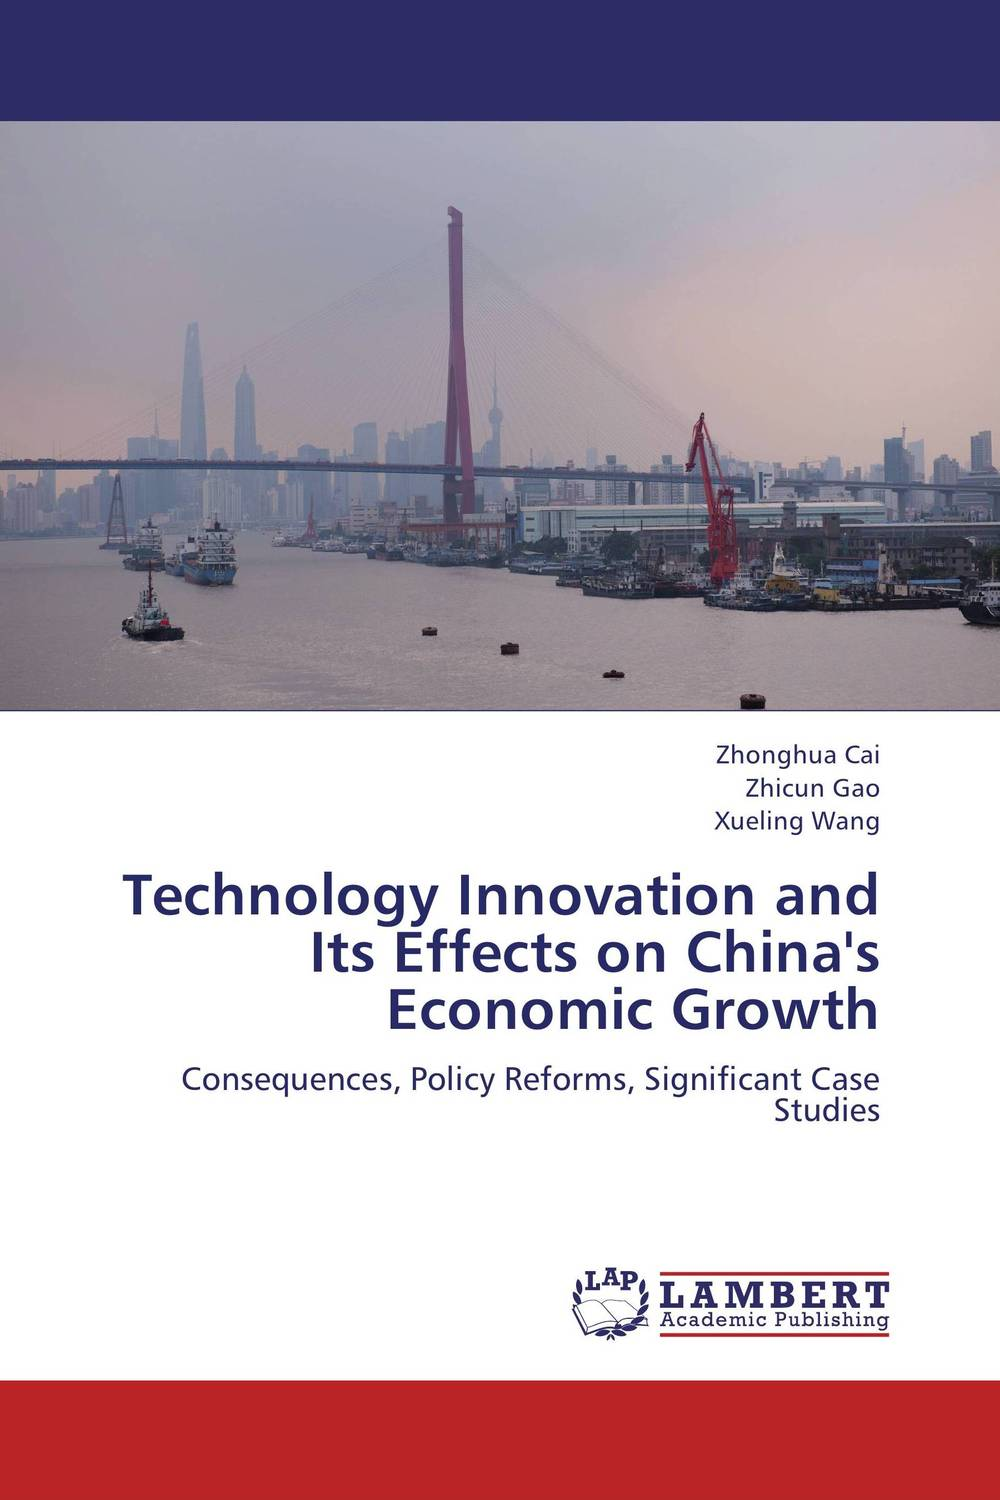 Technology Innovation and Its Effects on China's Economic Growth patent intensity and economic growth